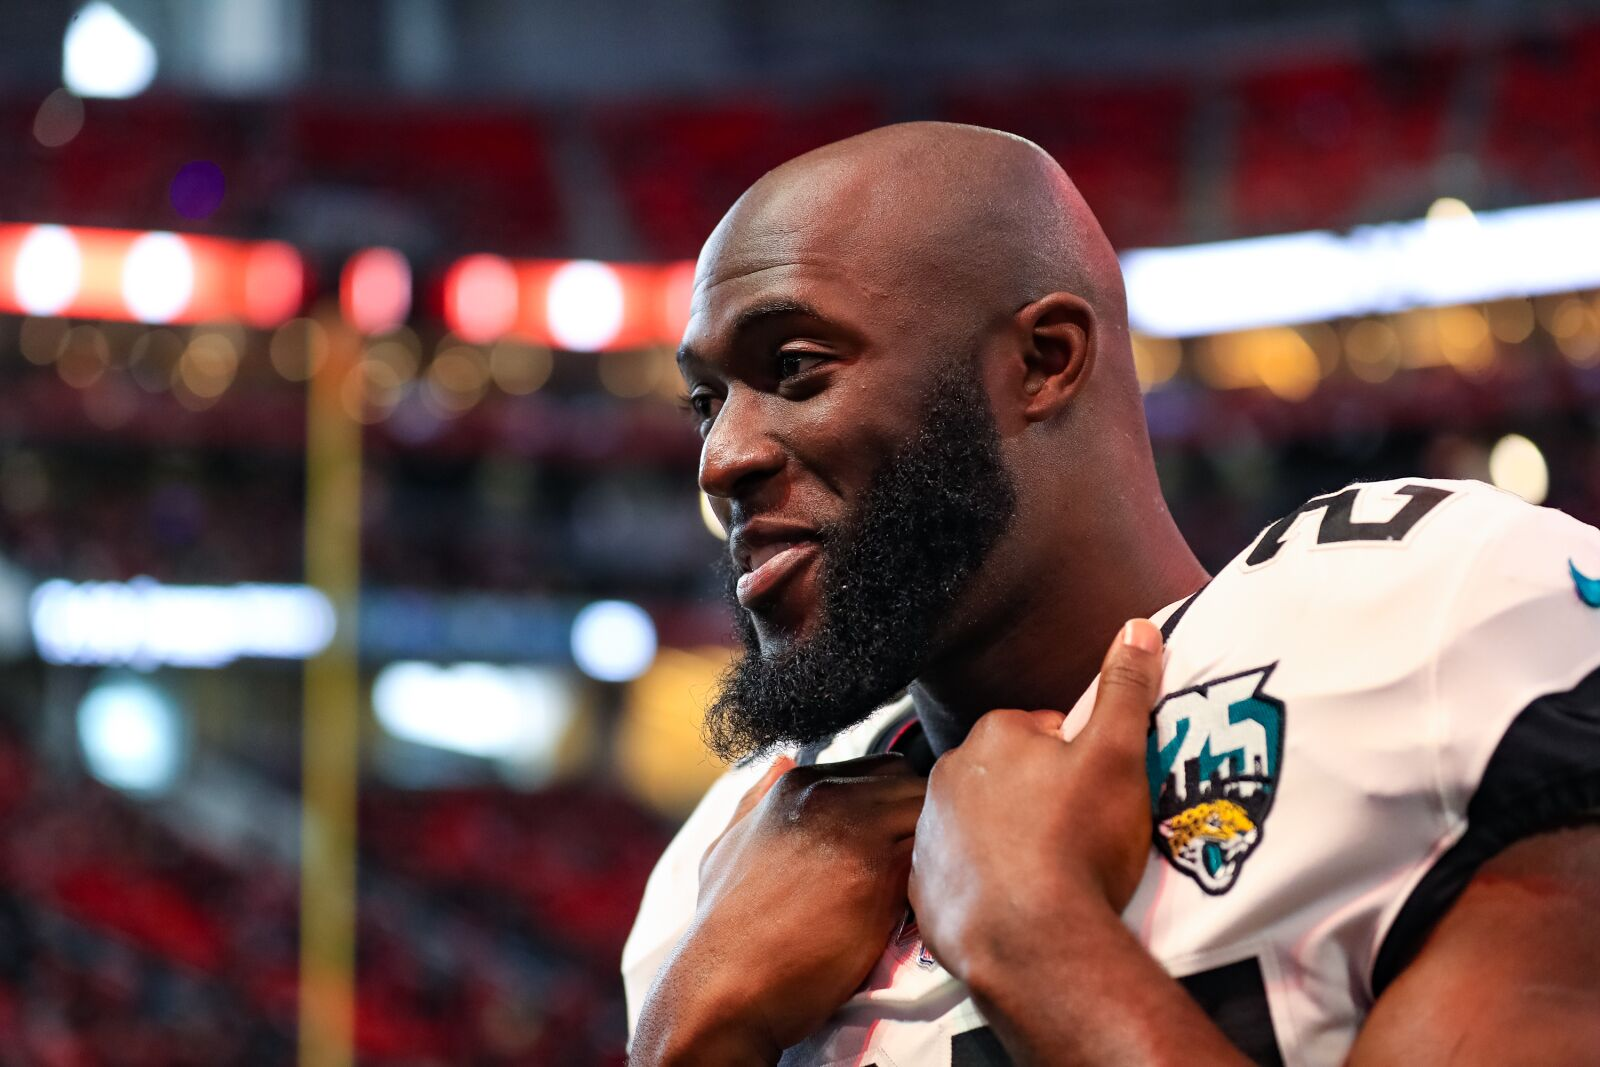 Leonard Fournette's 2019 fantasy season was great but not repeatable